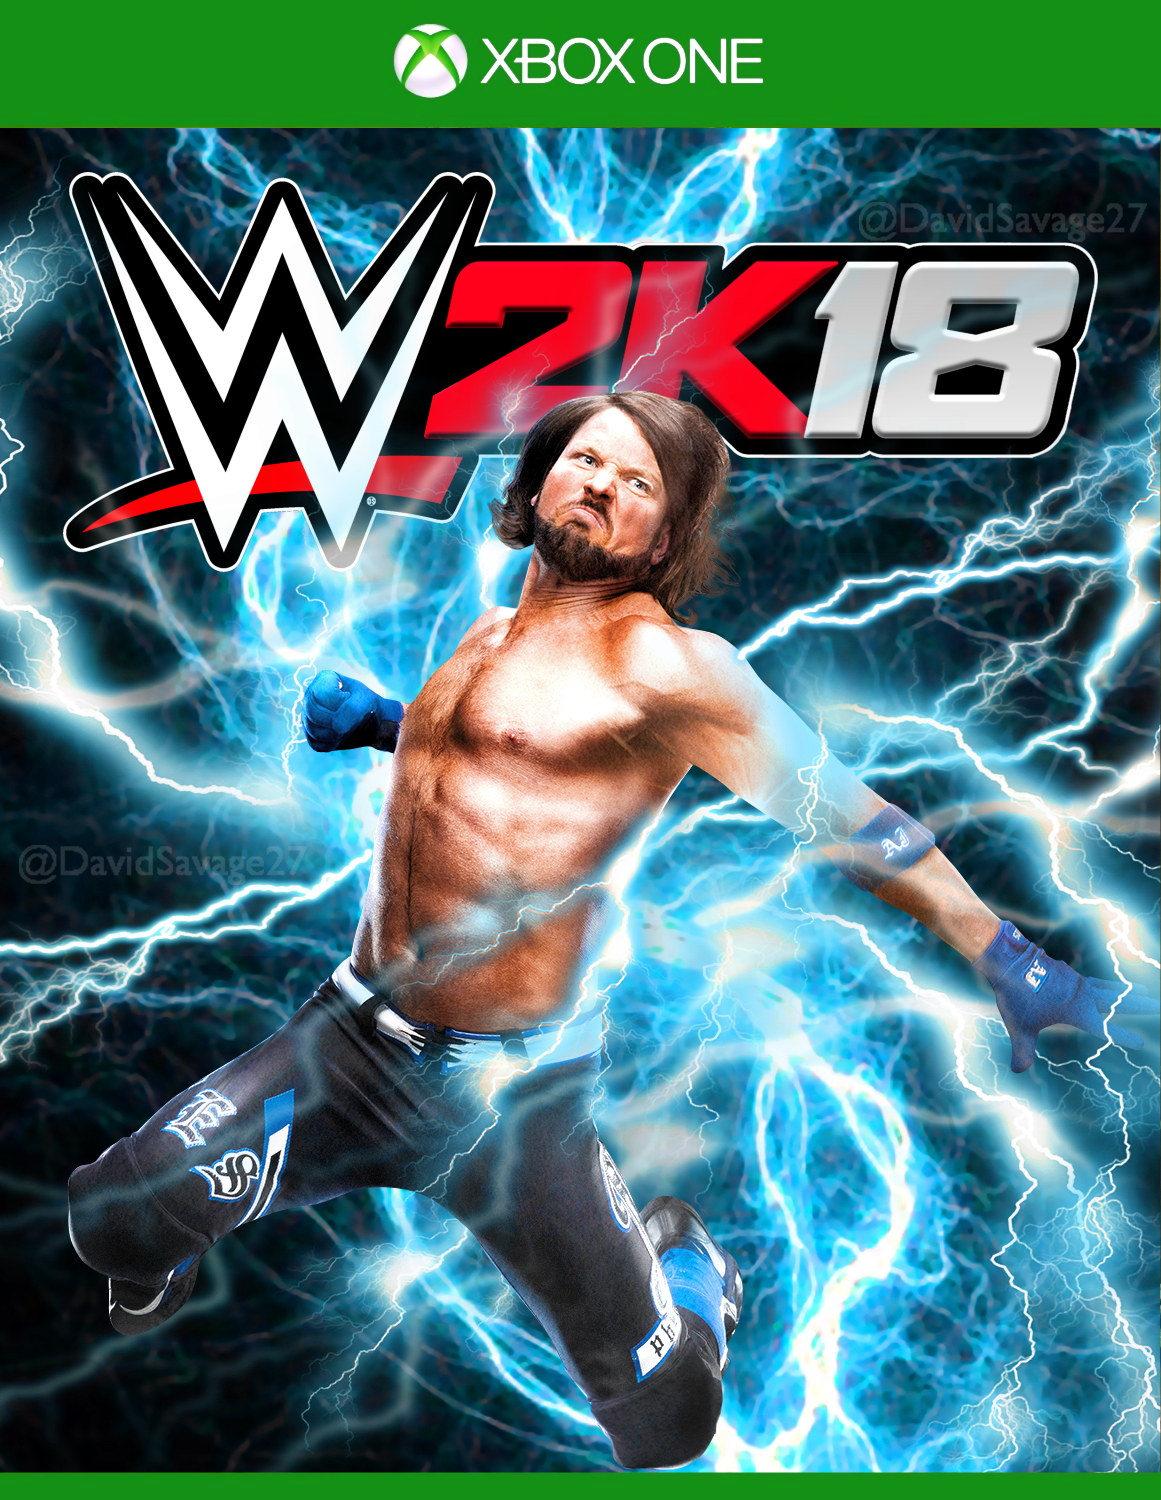 Book Cover Background Xbox : Wwe k cover xbox one by ultimate savage on deviantart